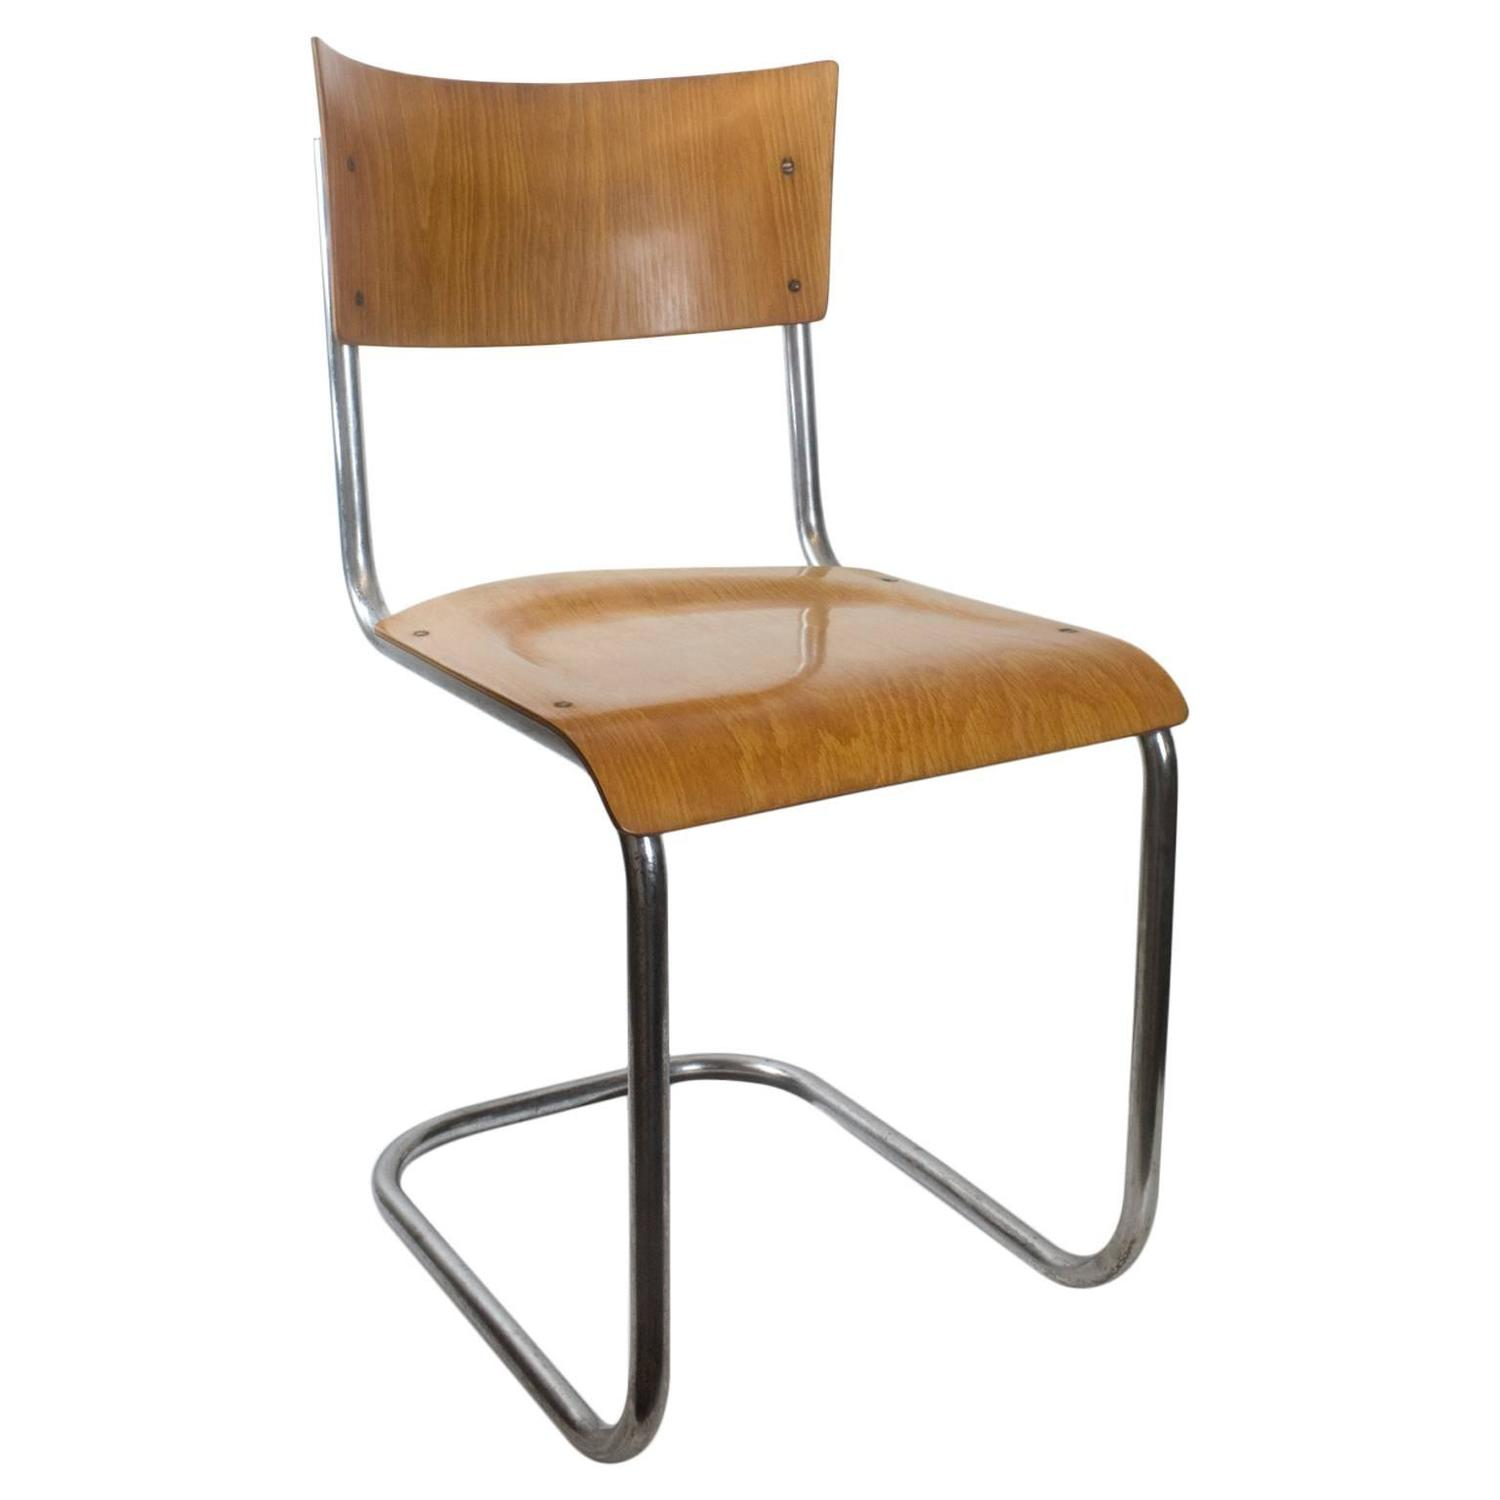 20th century bauhaus tubular chair by mart stam for sale at 1stdibs. Black Bedroom Furniture Sets. Home Design Ideas